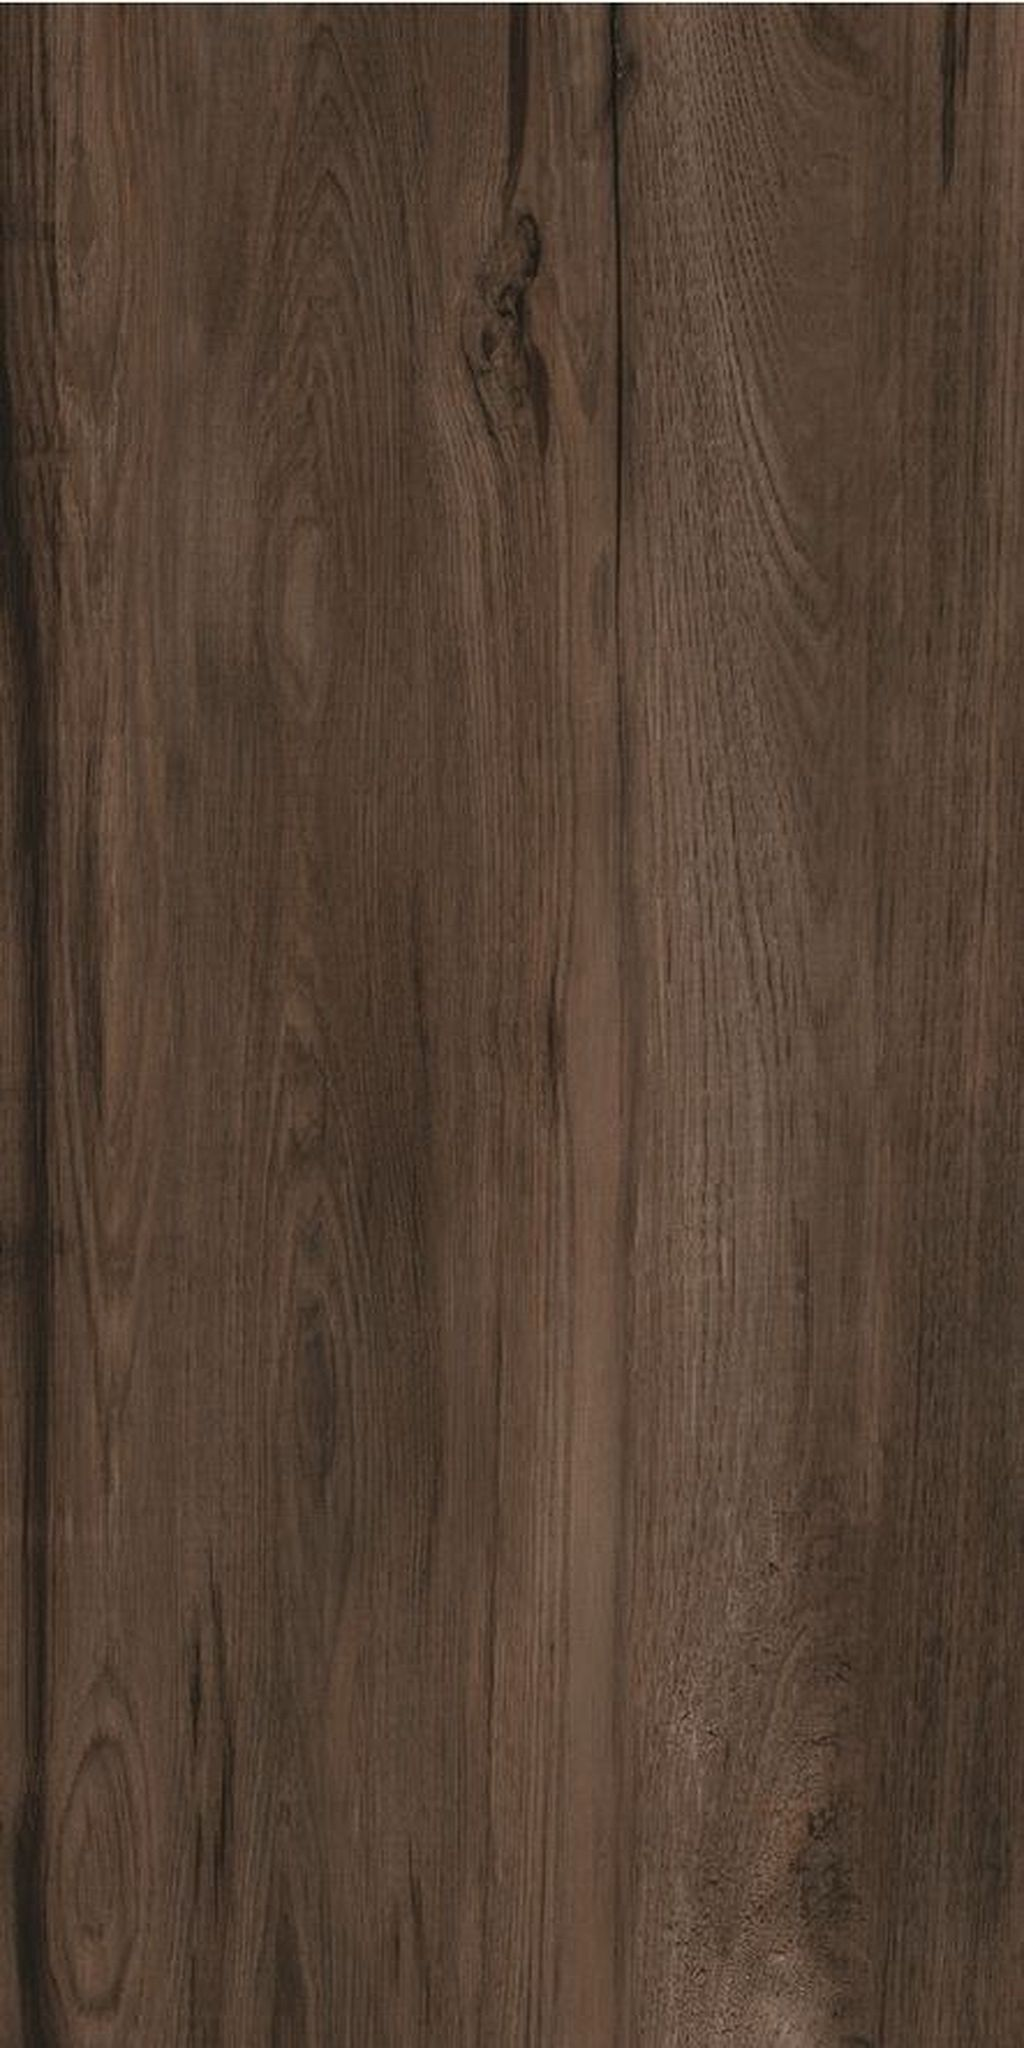 Wood Wood Autumn Winter 2014 2015 Latest Fashion Trends 2019: 60+ Awesome Tile Texture Ideas For Your Wall And Floor